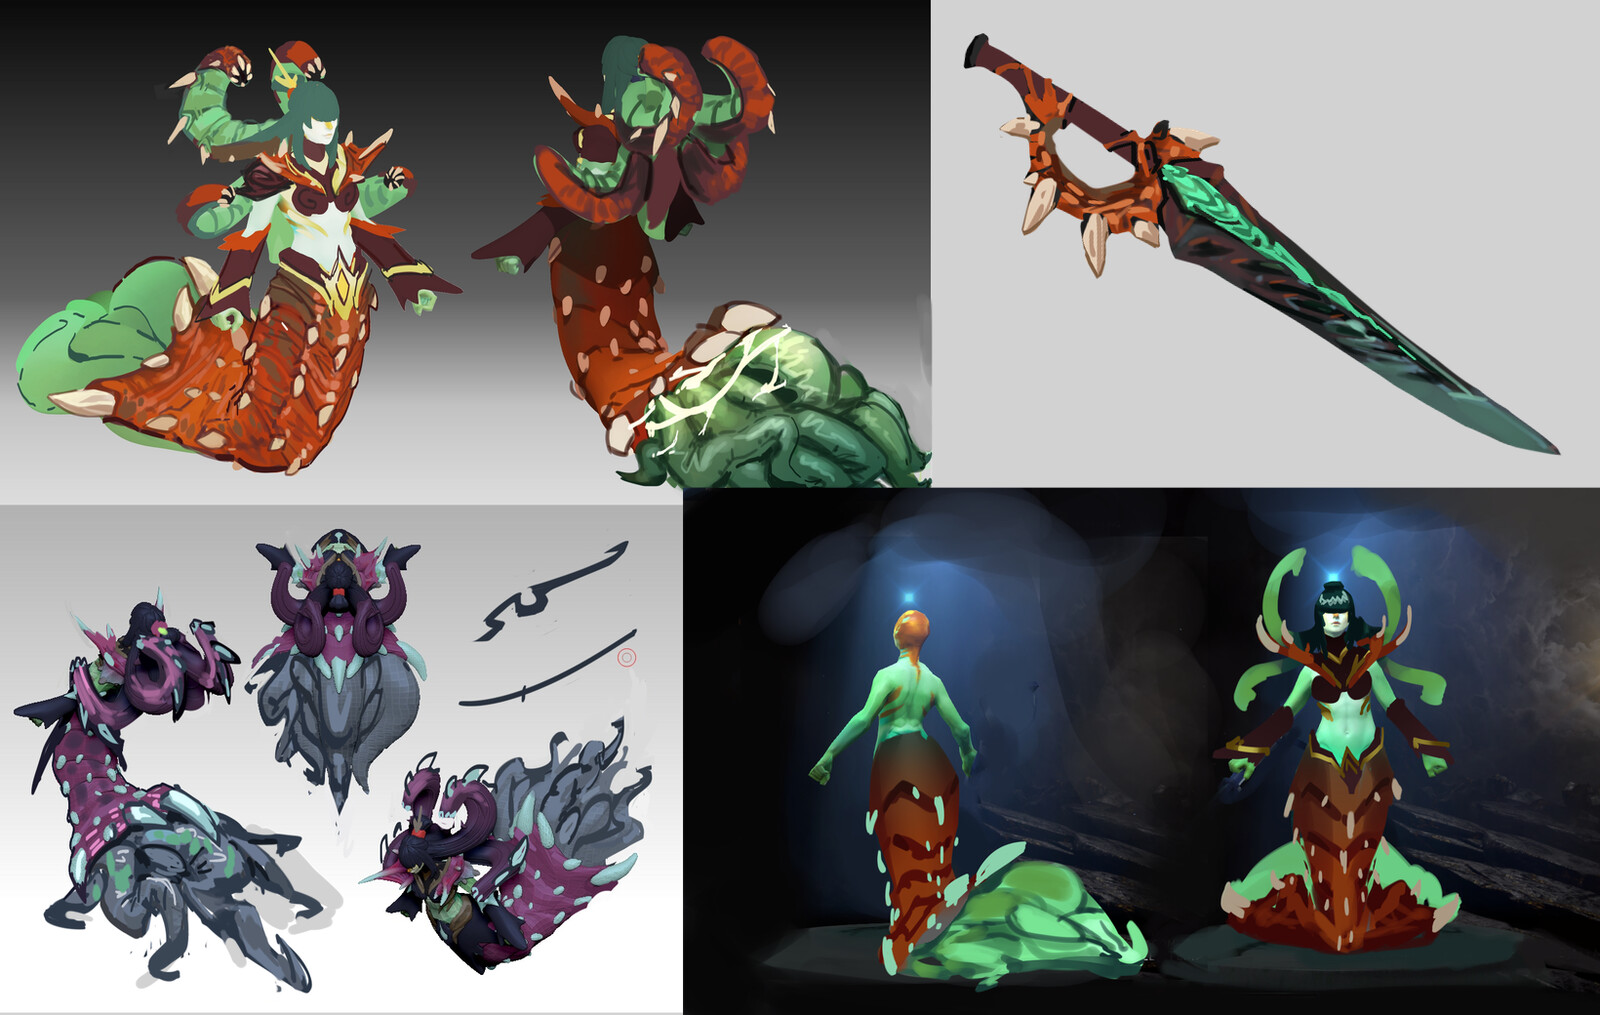 This set started from a blockout in Zbrush, so there wasn't one artwork the set is based on, but rather a lot of iterations of overpainted sculpt. Here are some of them.